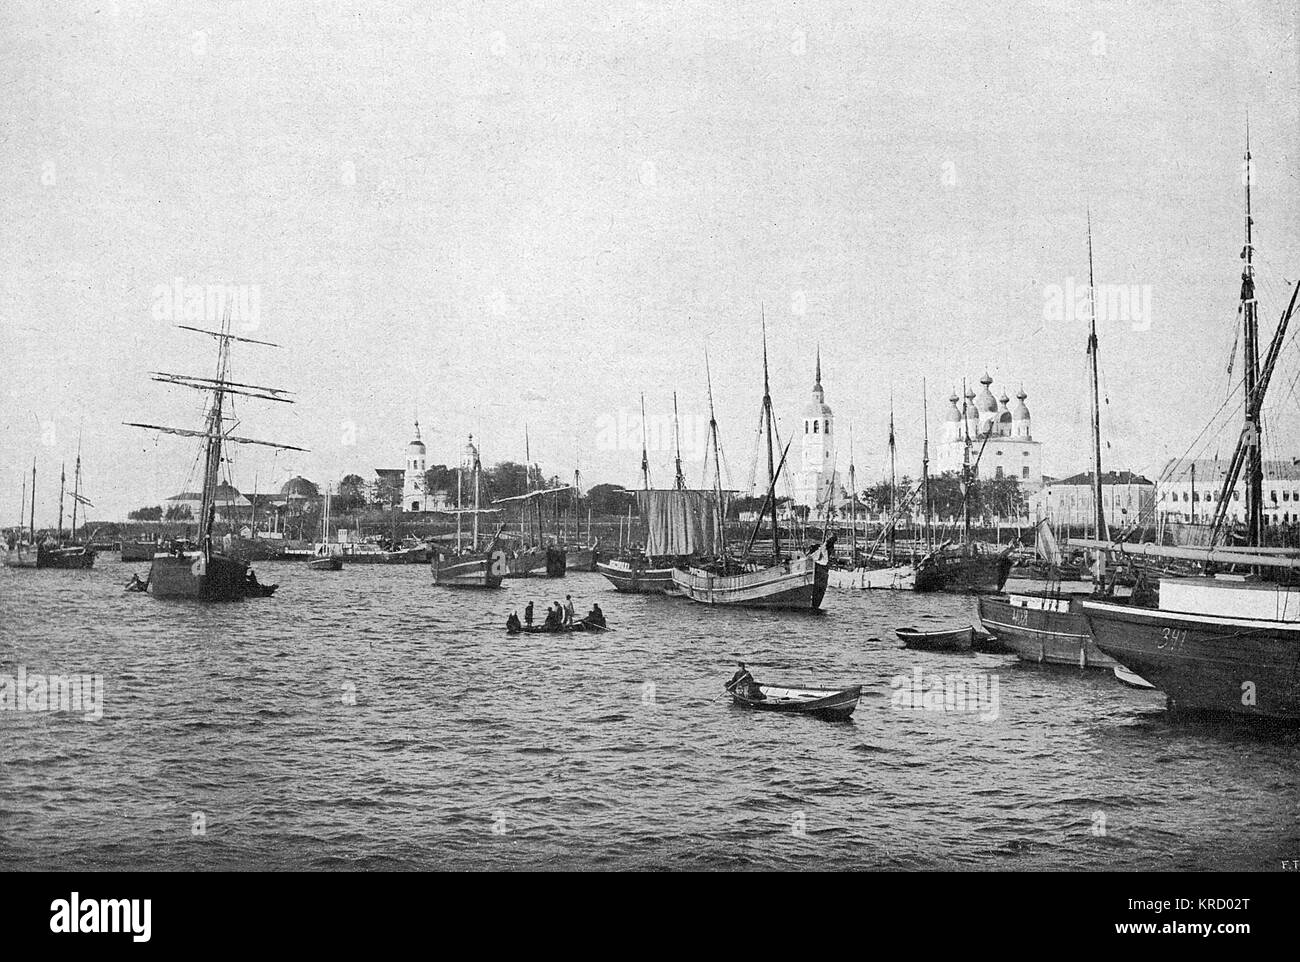 (aka Archangel) the harbour         Date: 1919 - Stock Image